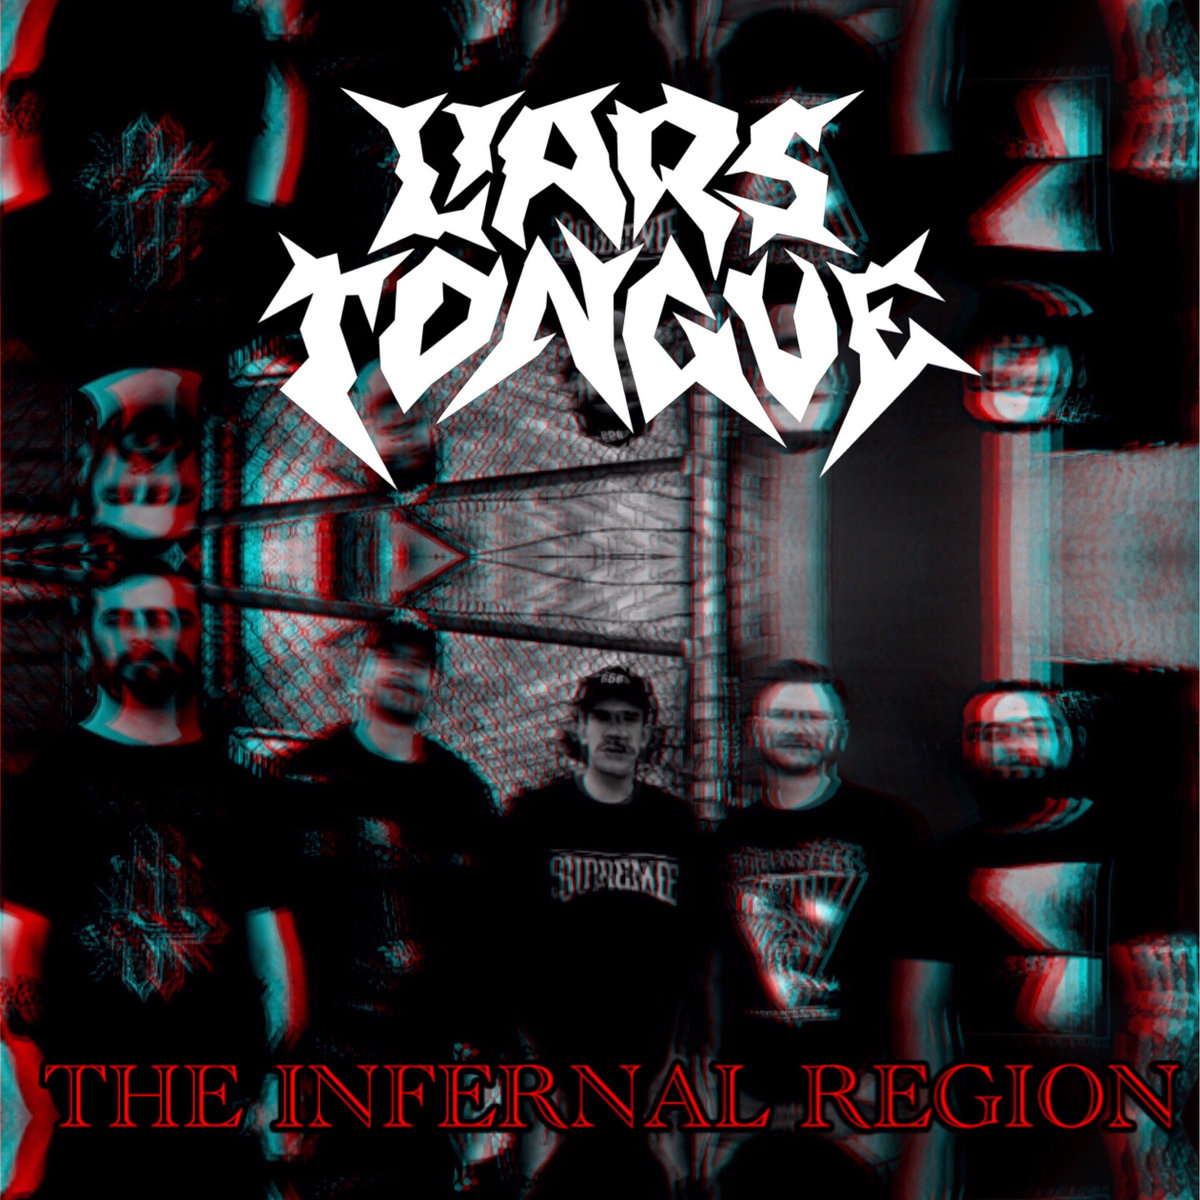 Liar's Tongue - The Infernal Region [single] (2018)